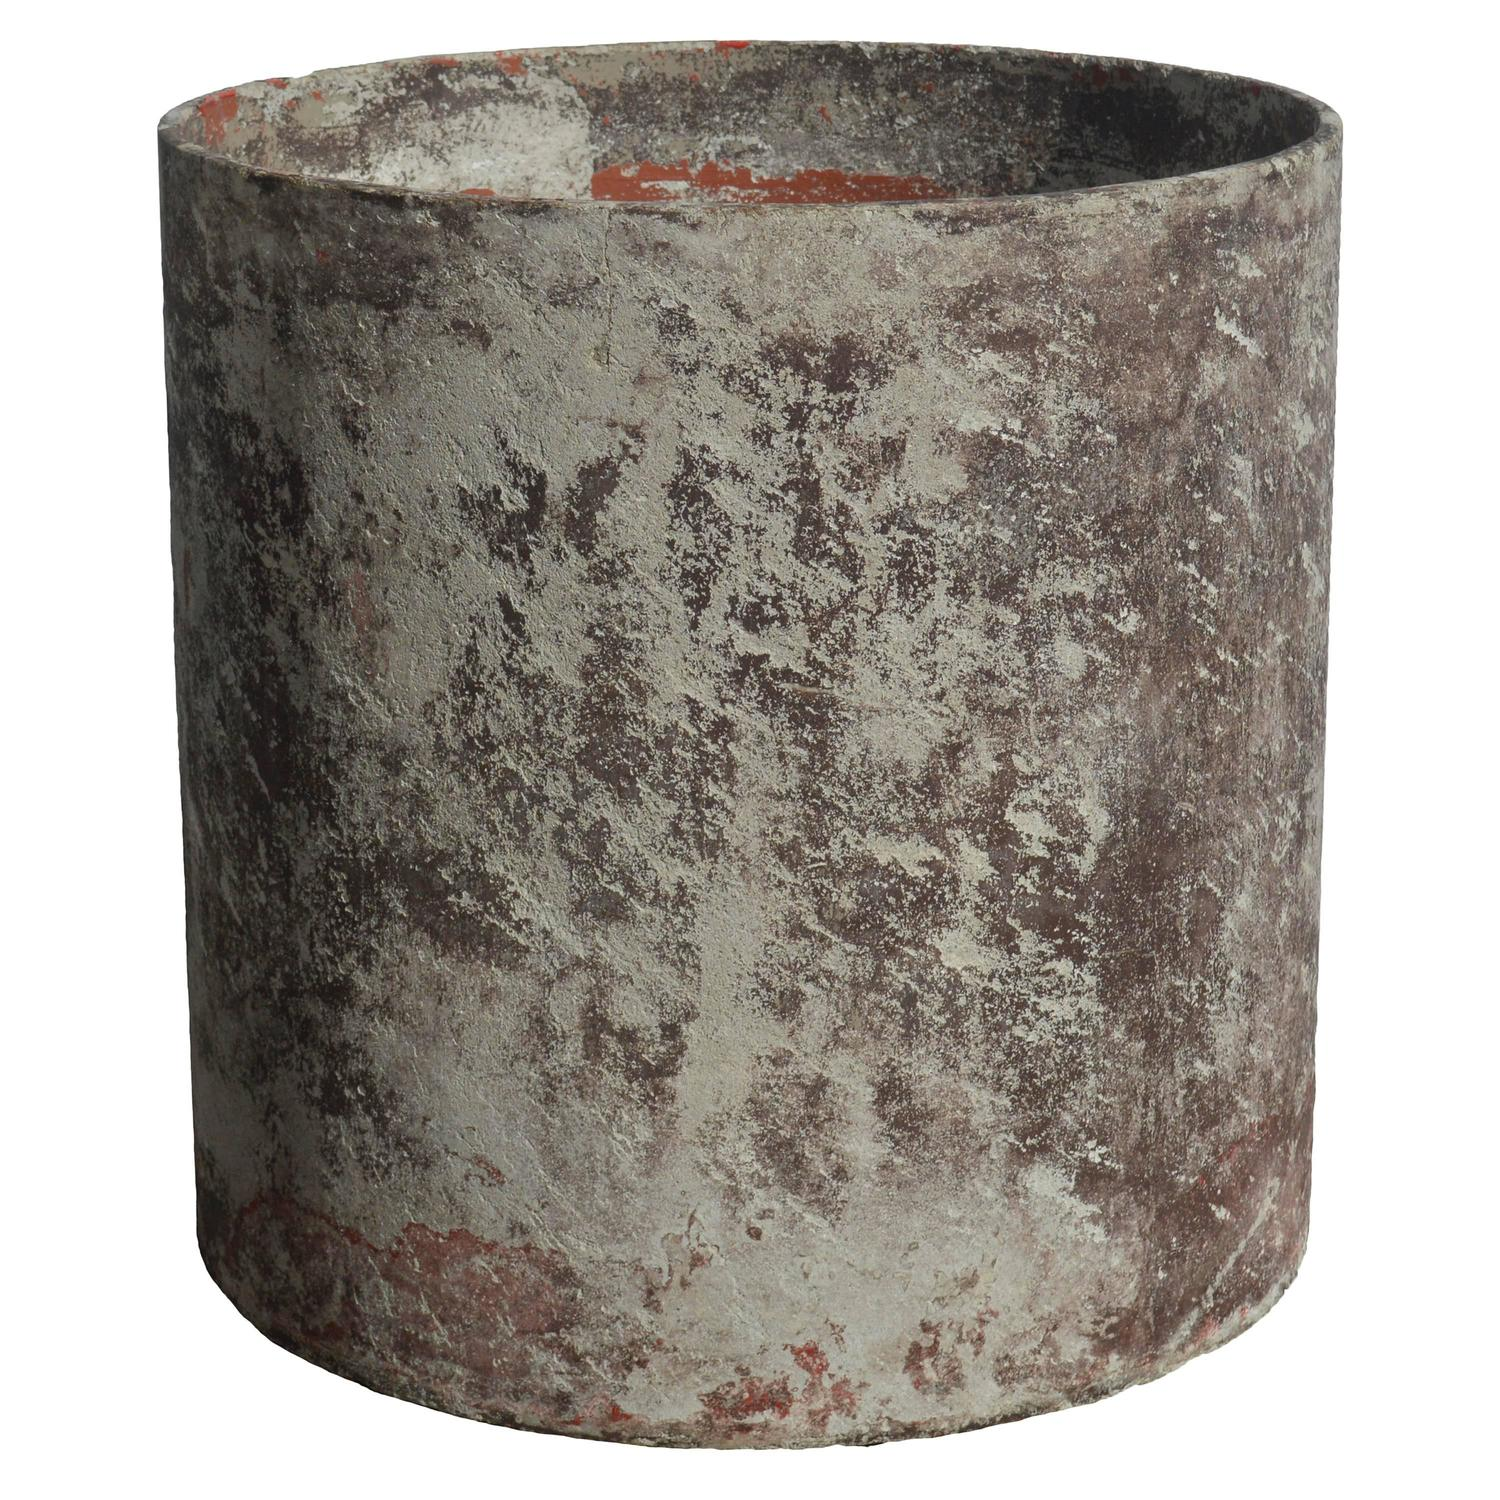 French Fiber Cement Cylinder Planter with Residual Paint by Willy Guhl ...